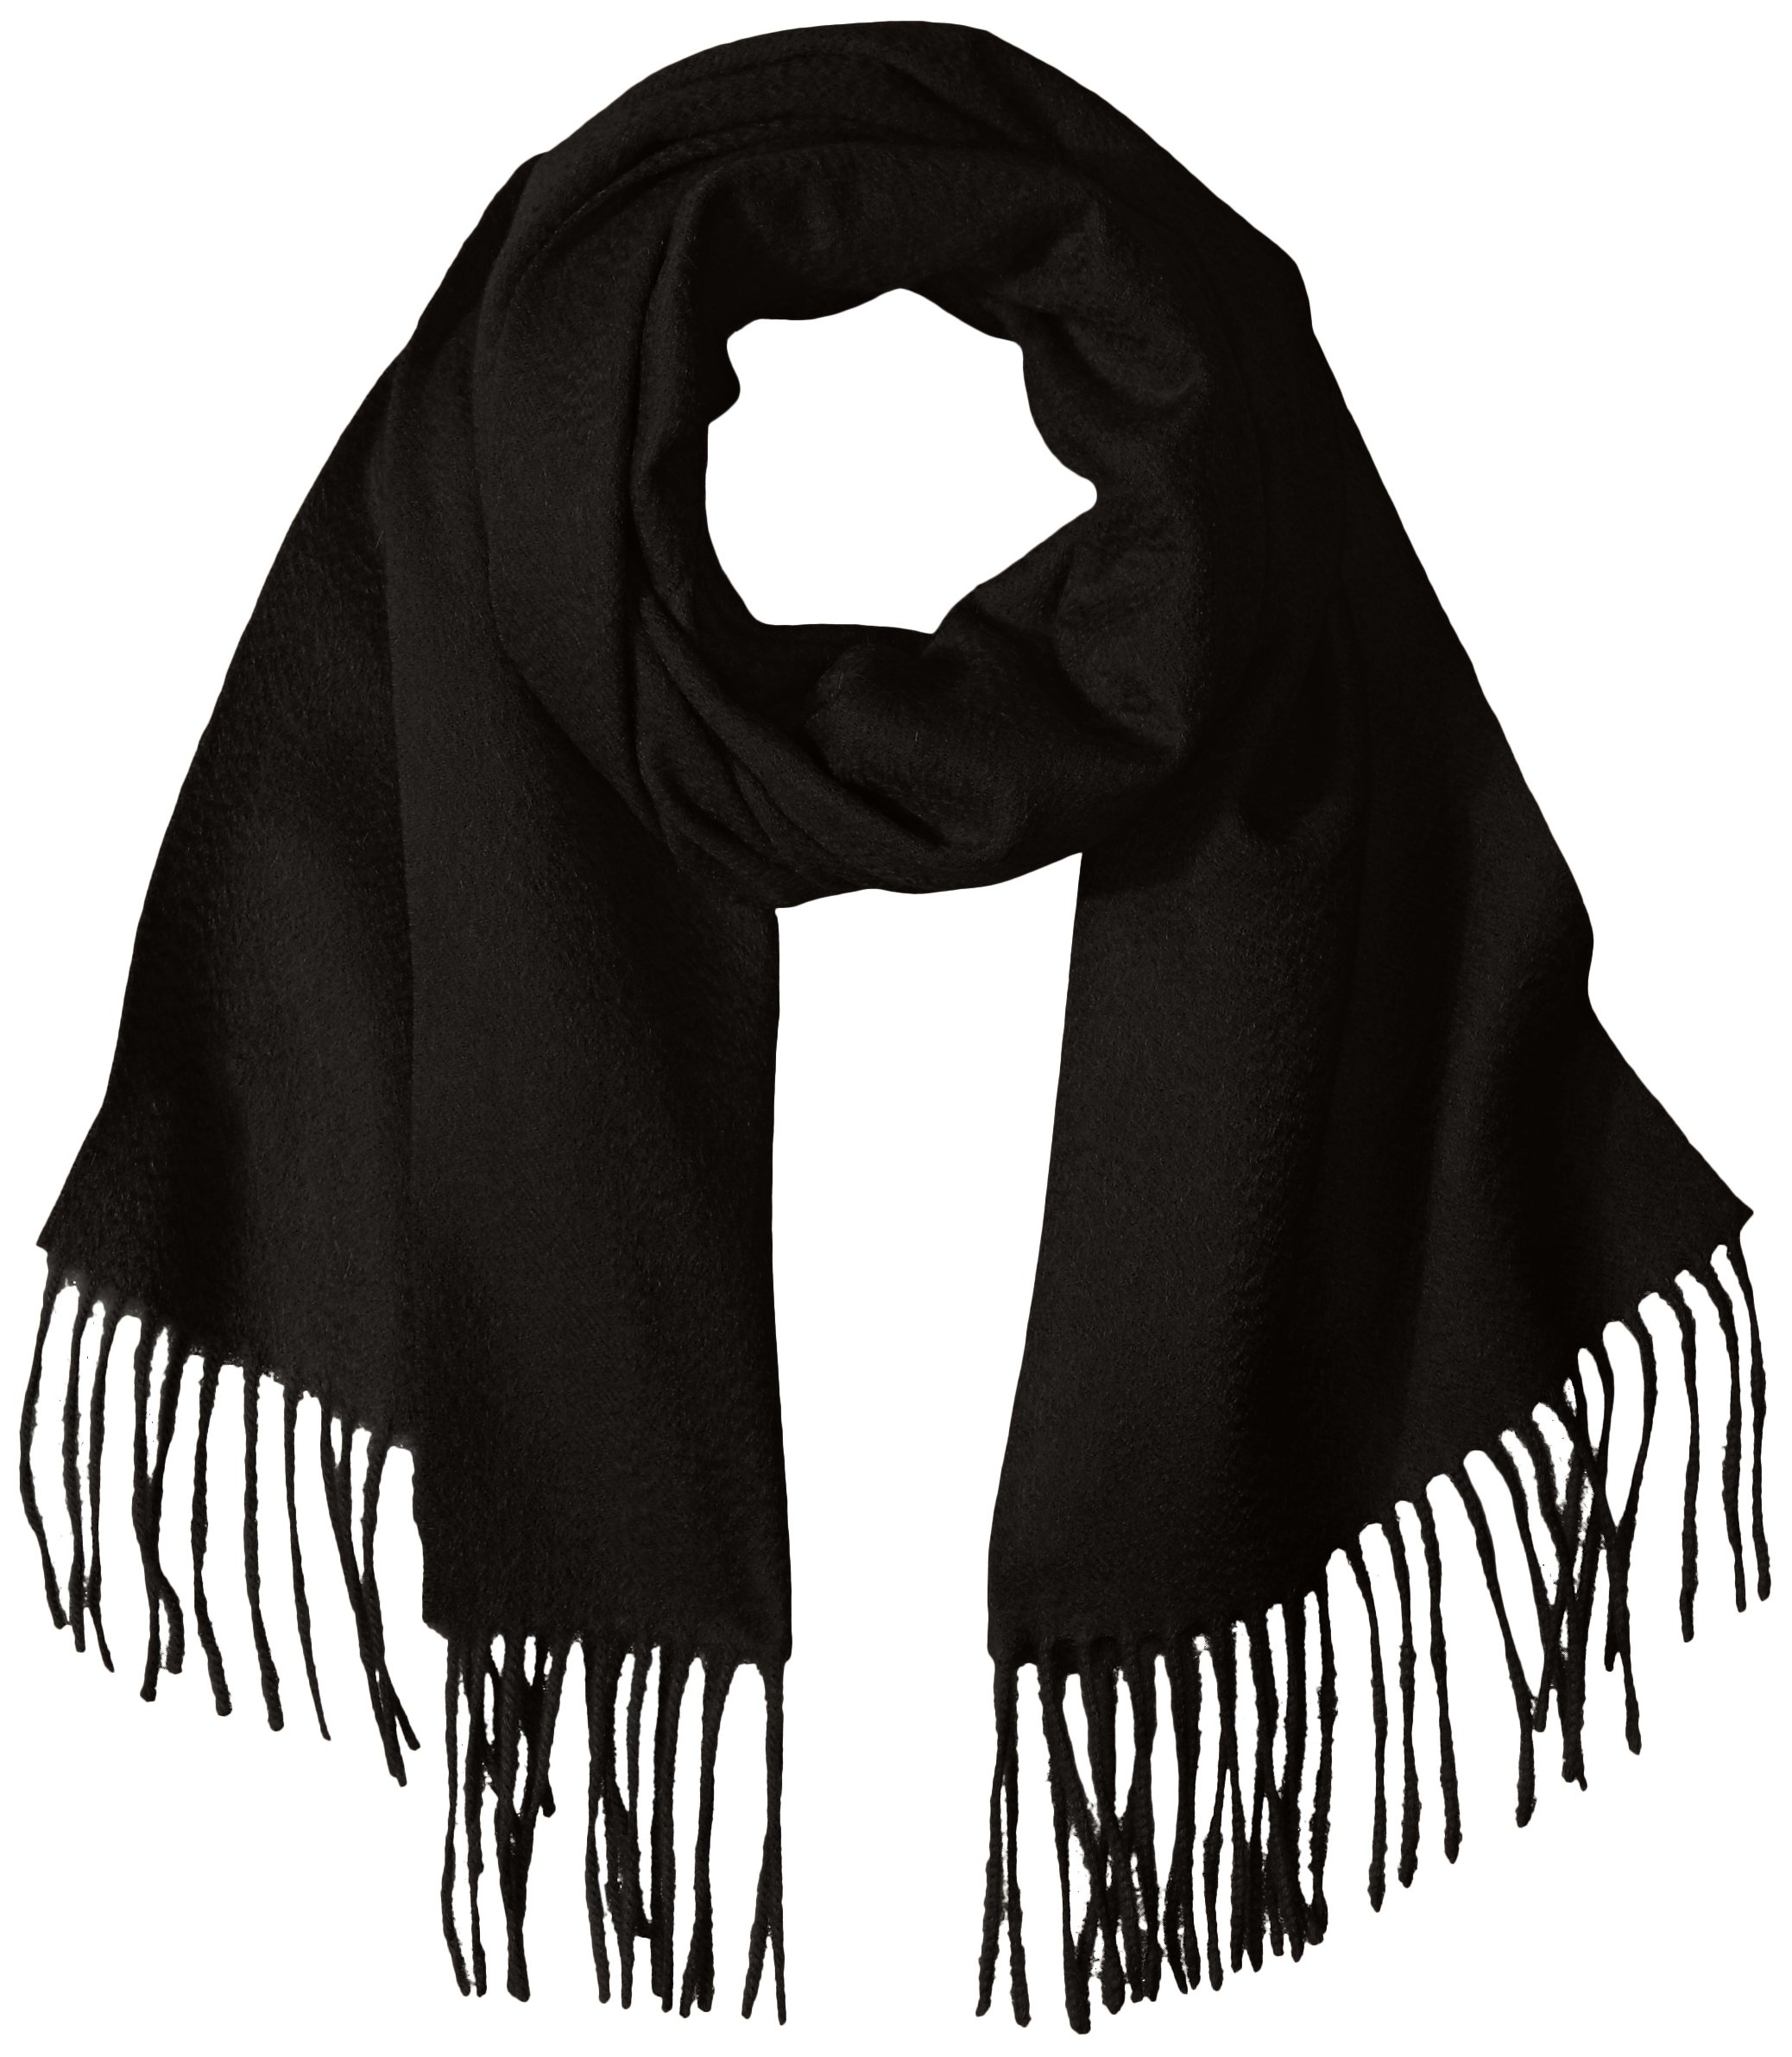 Sofia Cashmere Women's 100 Percent Cashmere Woven Scarf with Fringe, Black, One